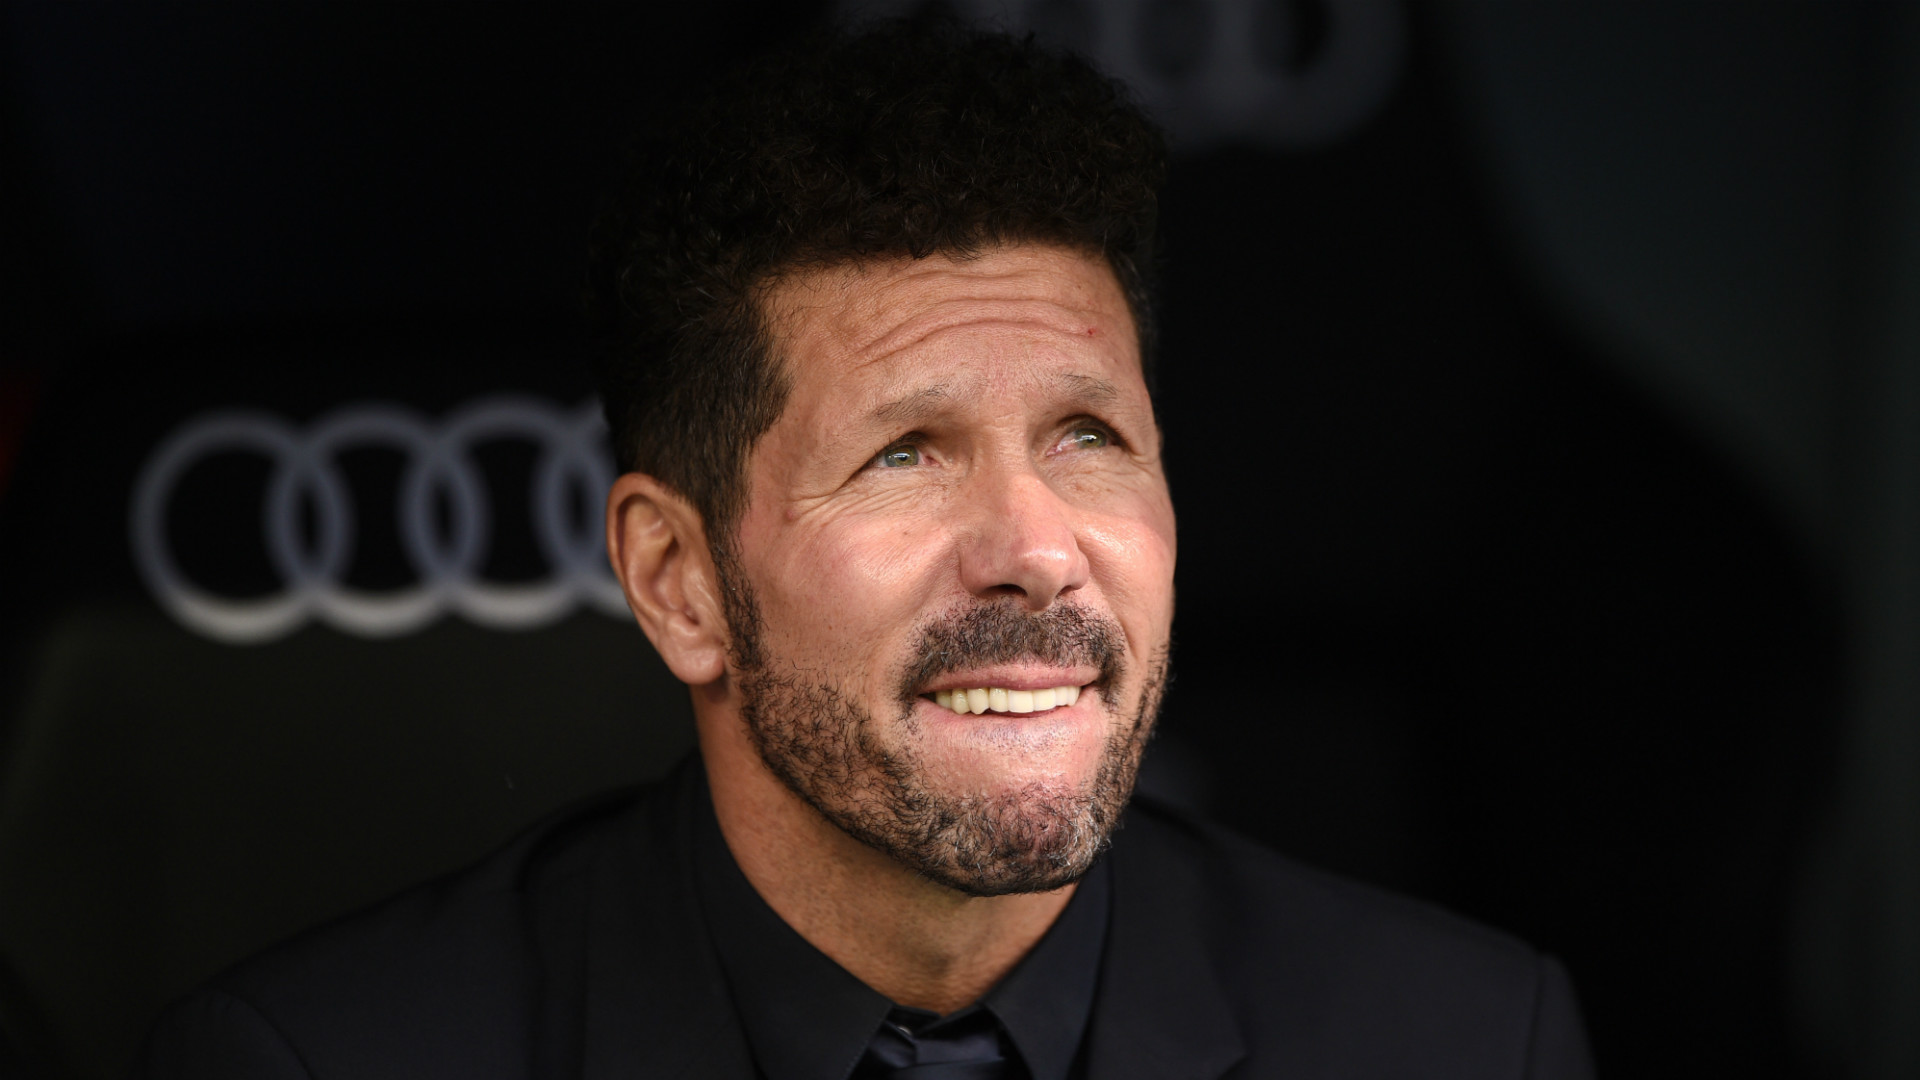 Simeone responds to Messi-Setien rift rumours ahead of Barca's clash with Atletico